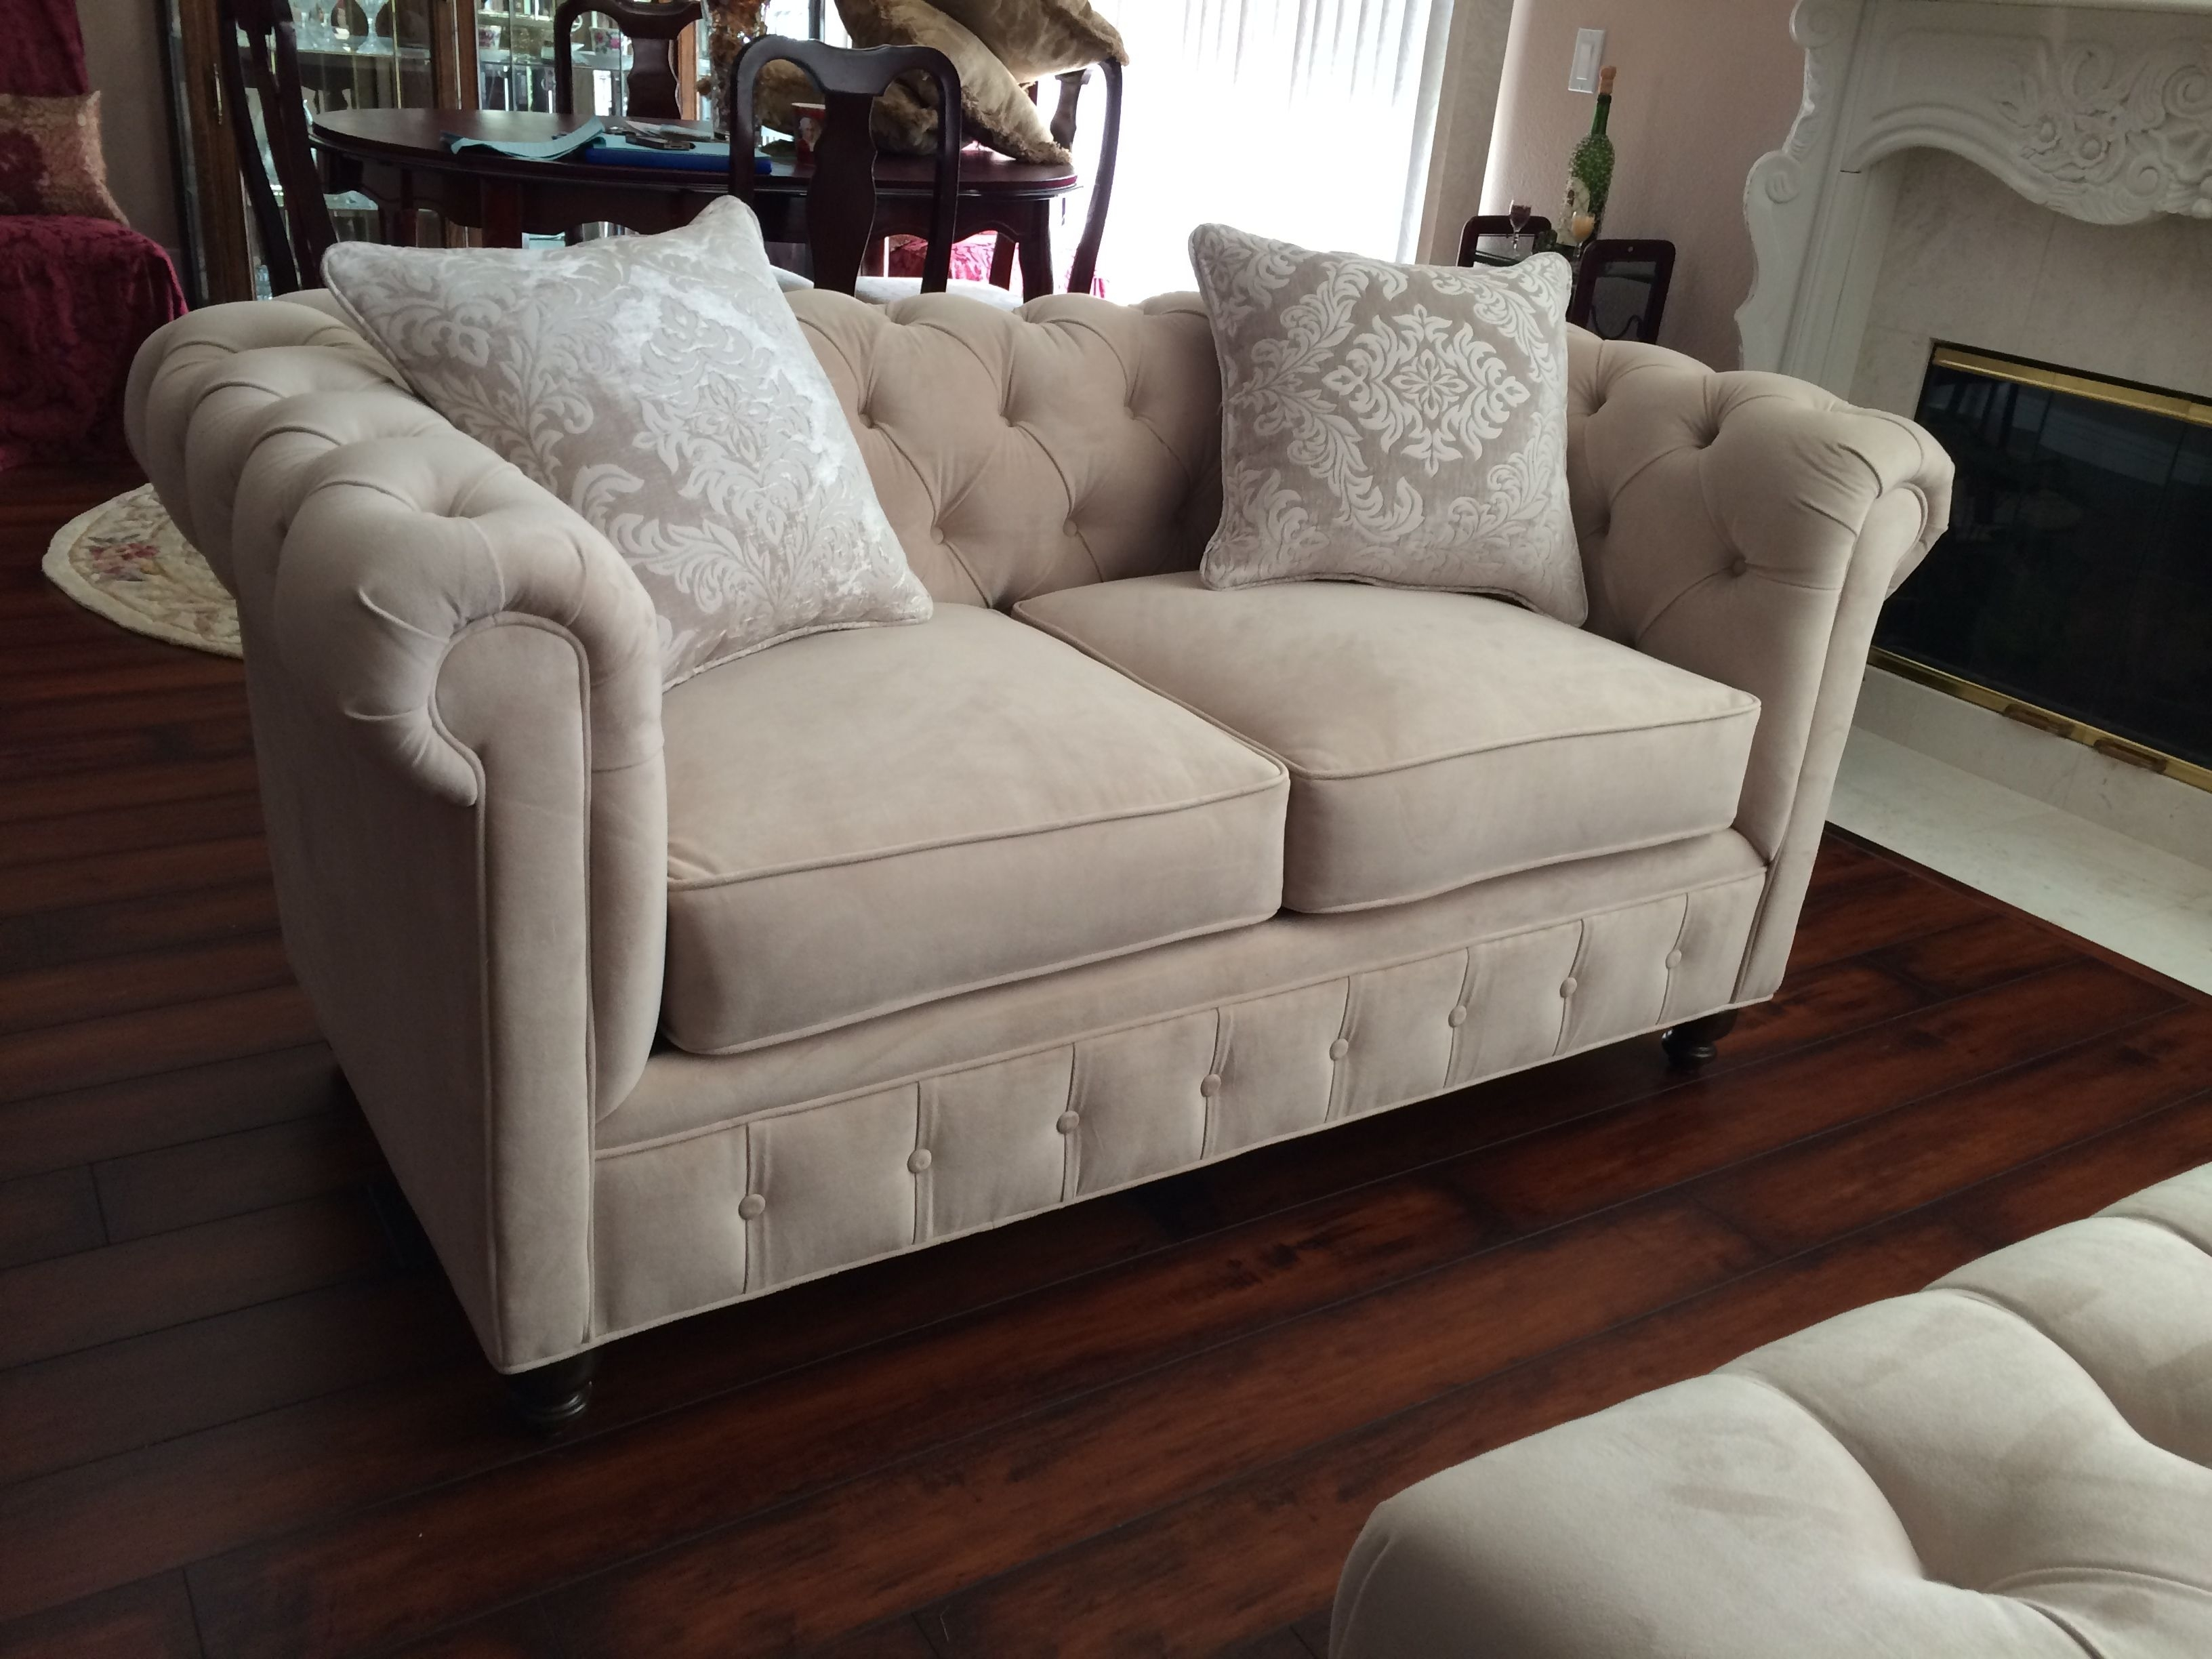 Pinmonarch Sofas – Your Custom Sofa & Custom Sectional Source With Houzz Sectional Sofas (View 4 of 10)